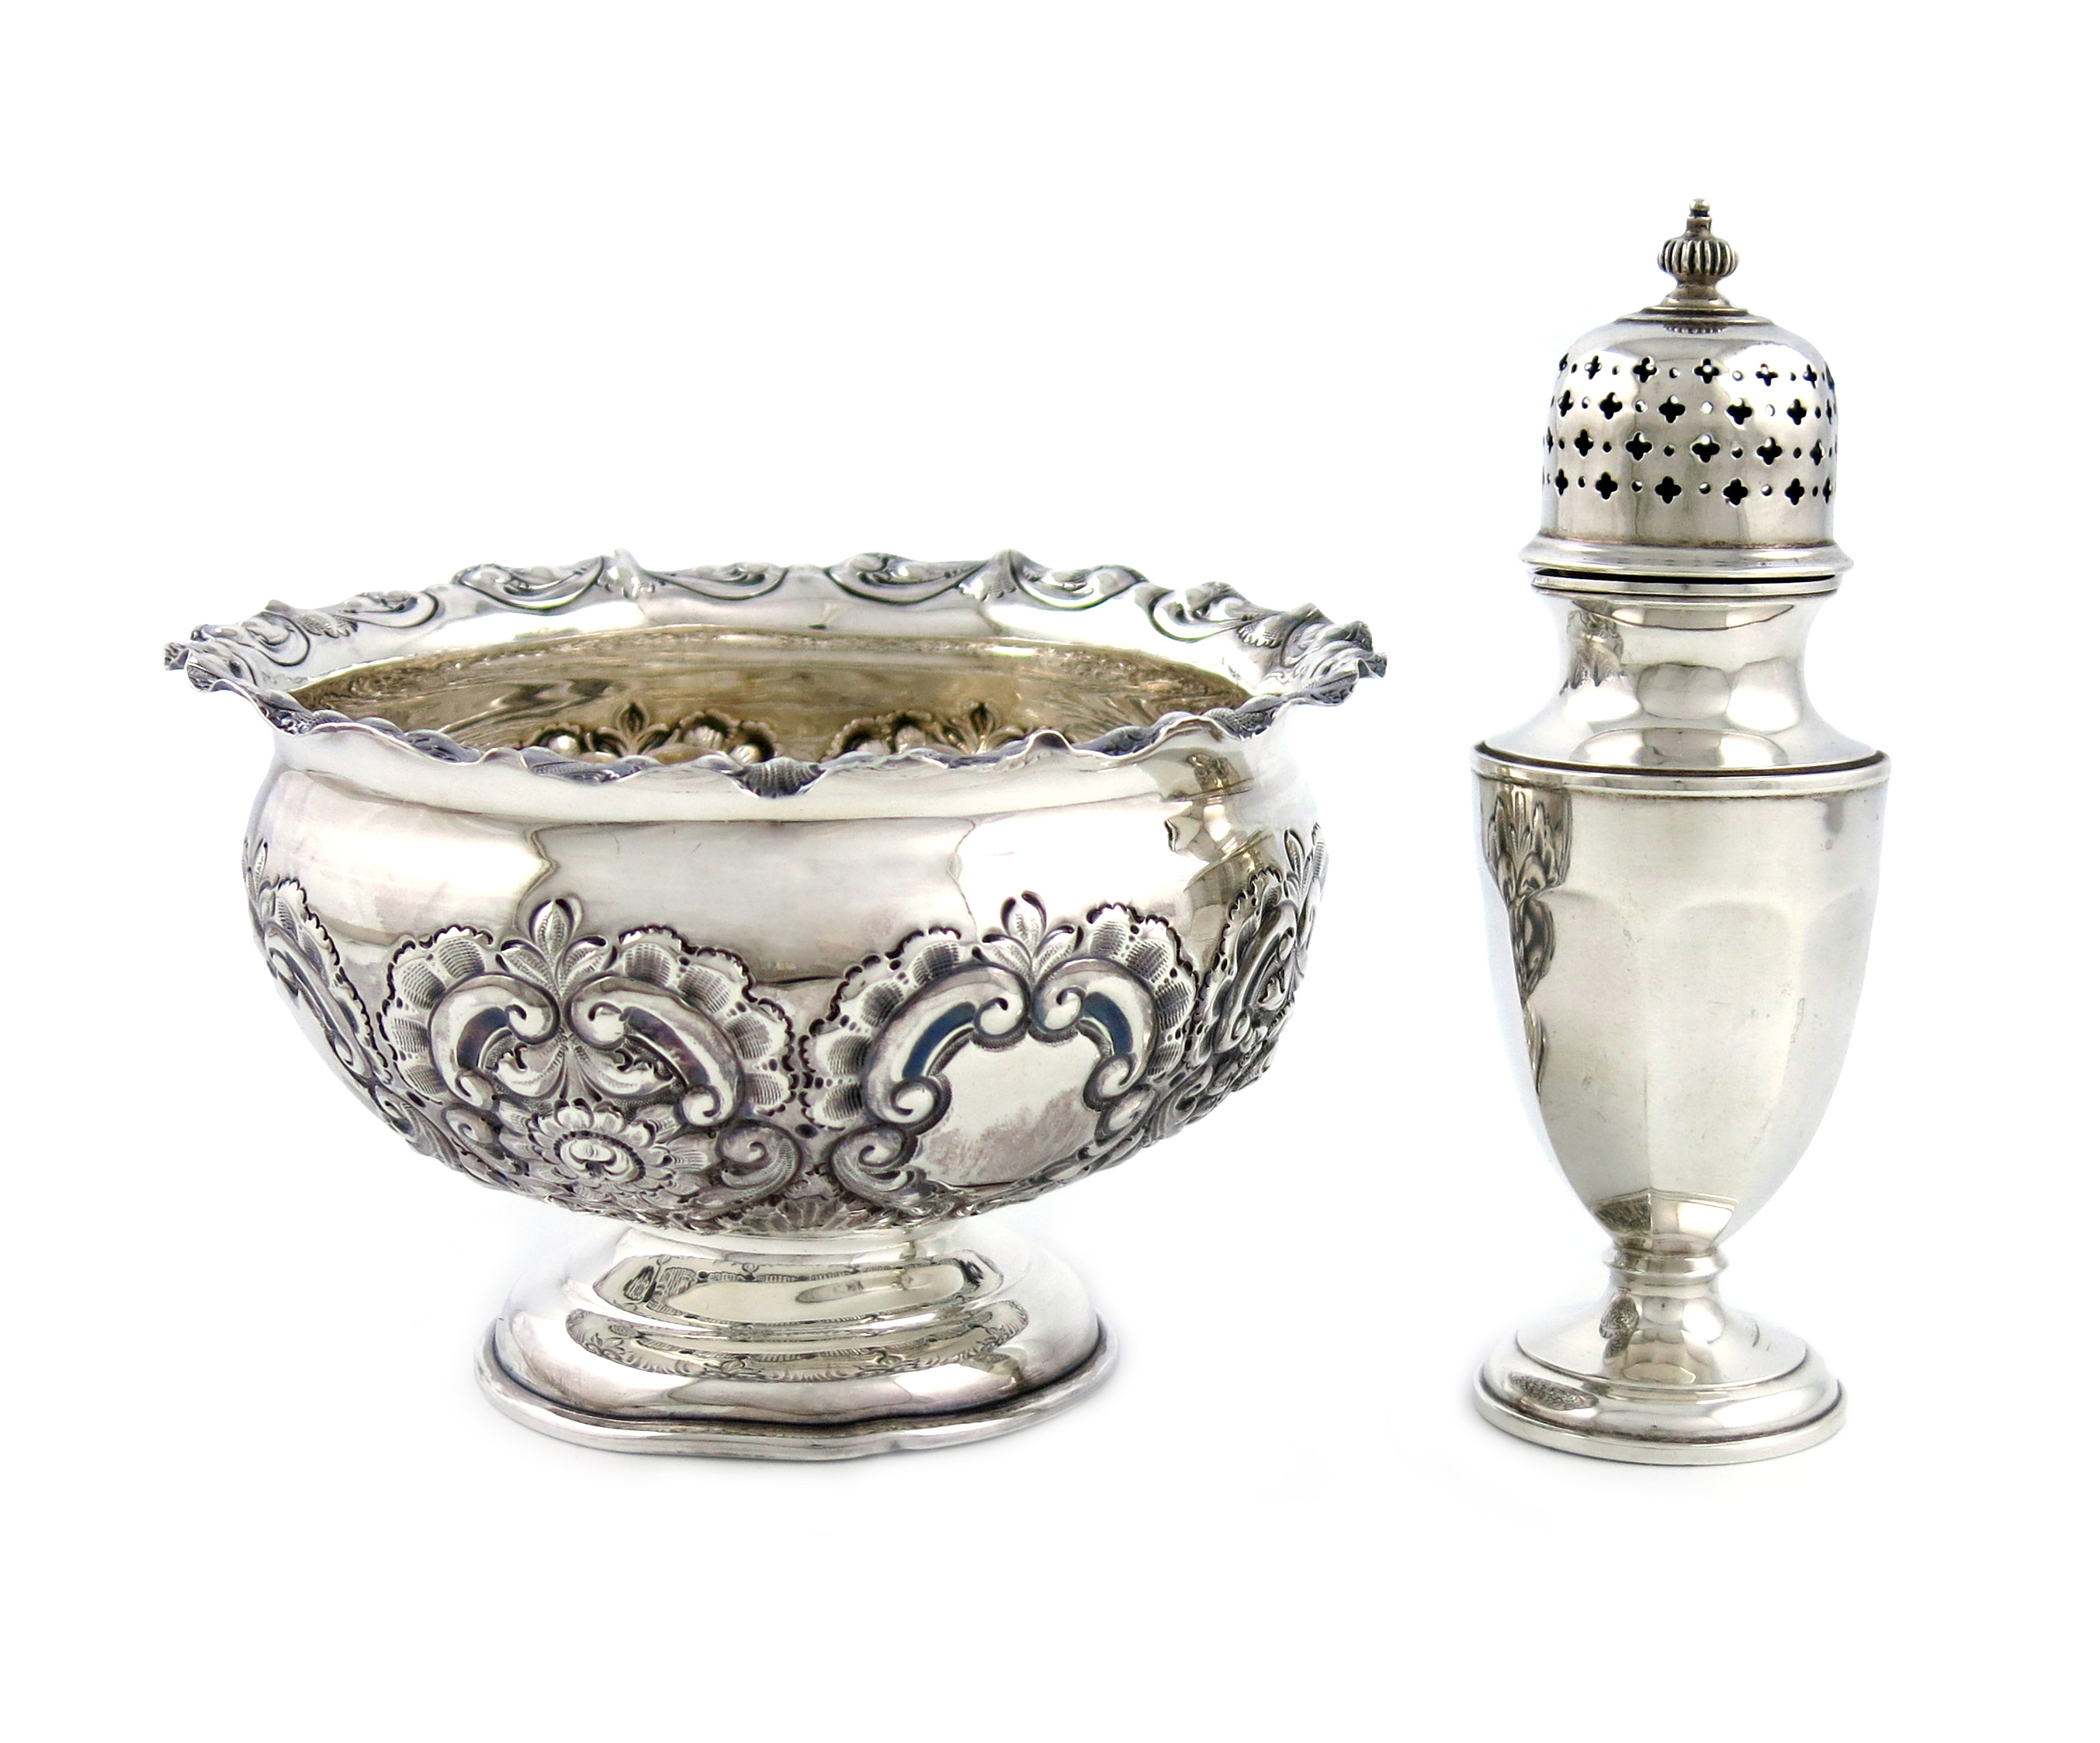 An Edwardian silver bowl